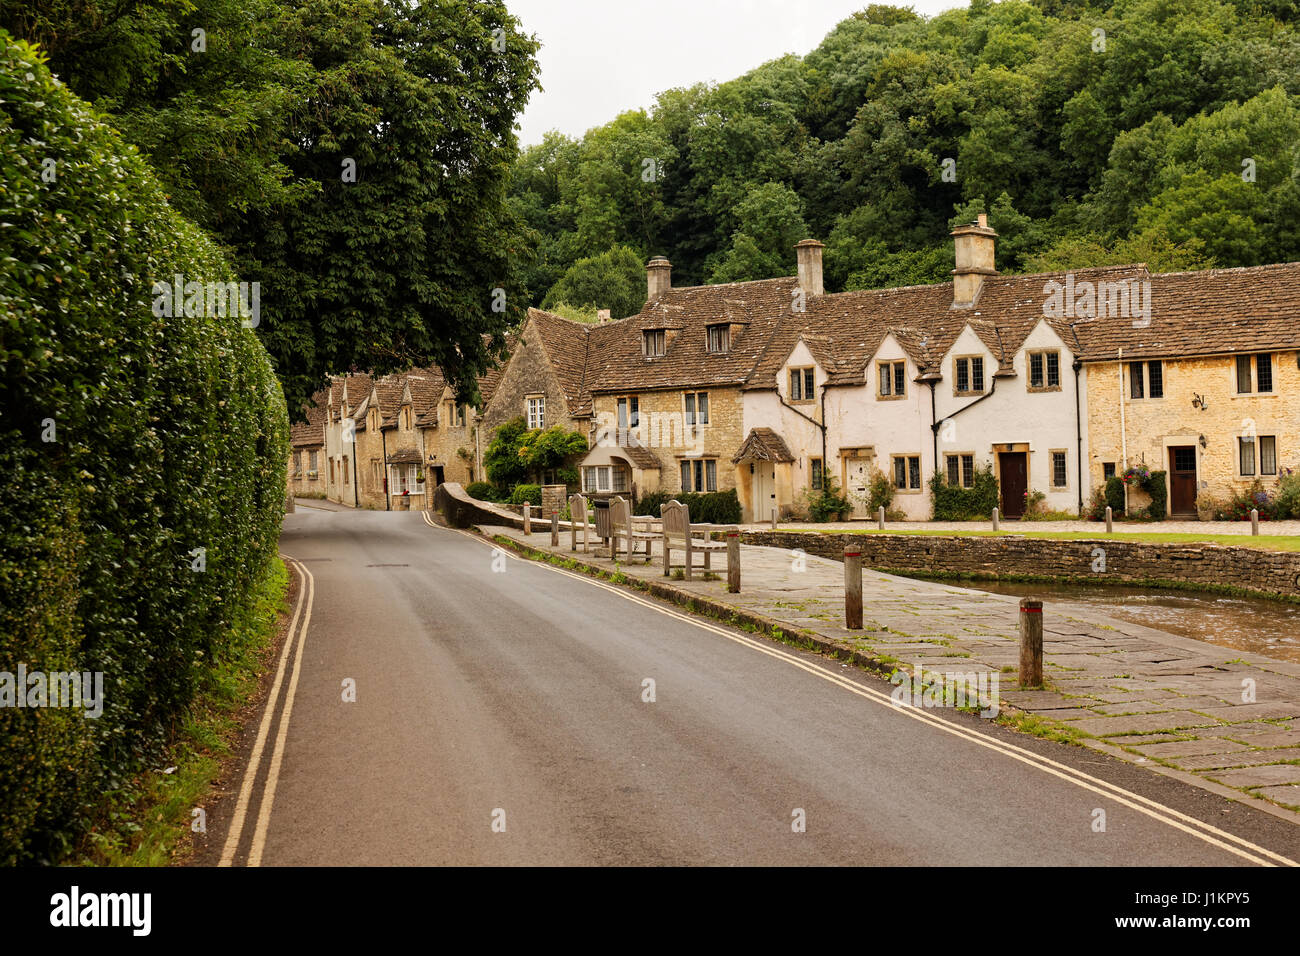 Main street in Castle Combe, Wiltshire, England, UK - Stock Image